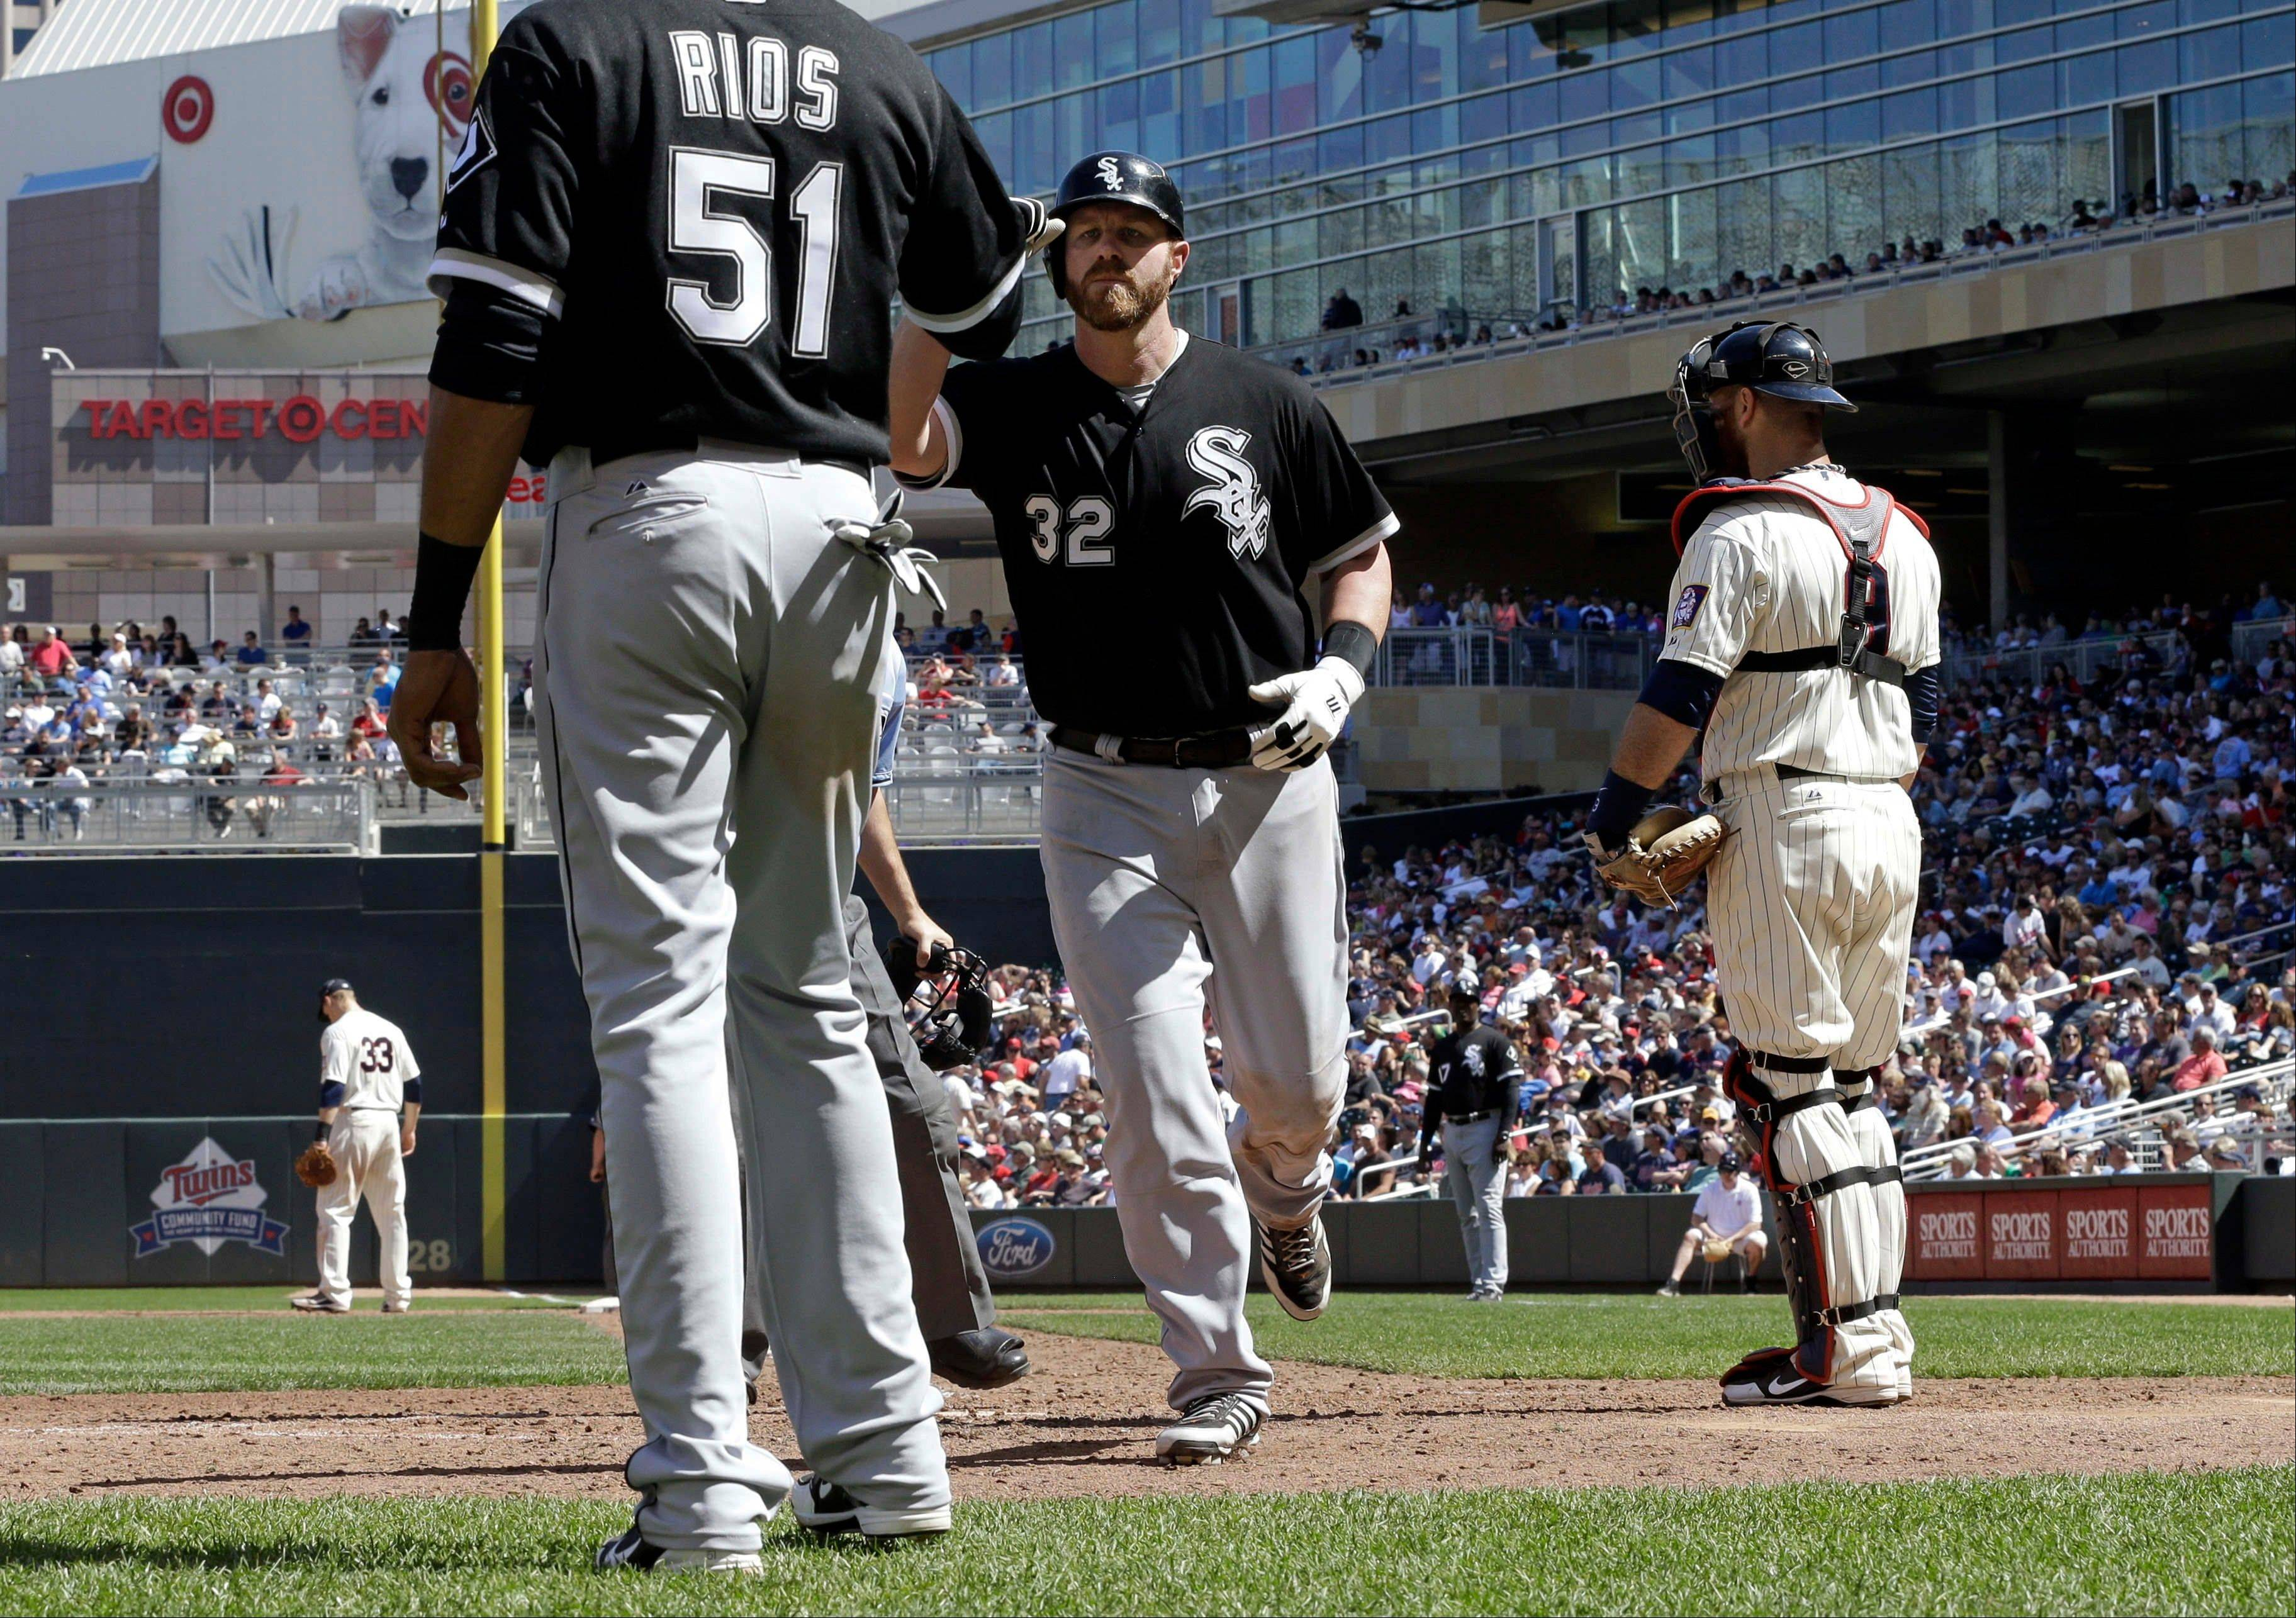 Chicago White Sox� Adam Dunn (32) is greeted by teammate Alex Rios after hitting his second two-run home run Wednesday against the Minnesota Twins in Minneapolis. The White Sox won 9-4.